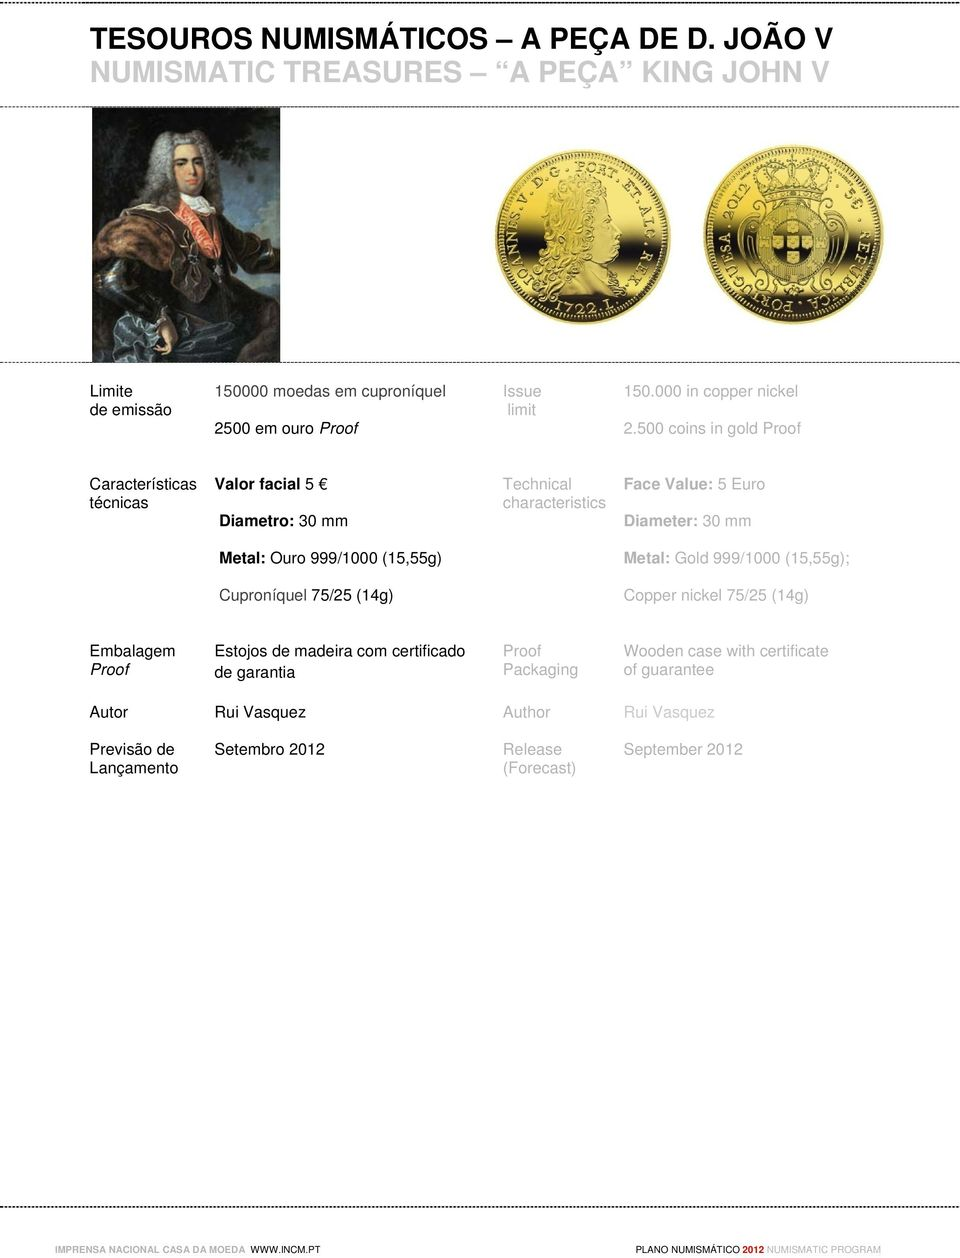 500 coins in gold Valor facial 5 Diametro: 30 mm Face Value: 5 Euro Diameter: 30 mm Metal: Ouro 999/1000 (15,55g) Metal: Gold